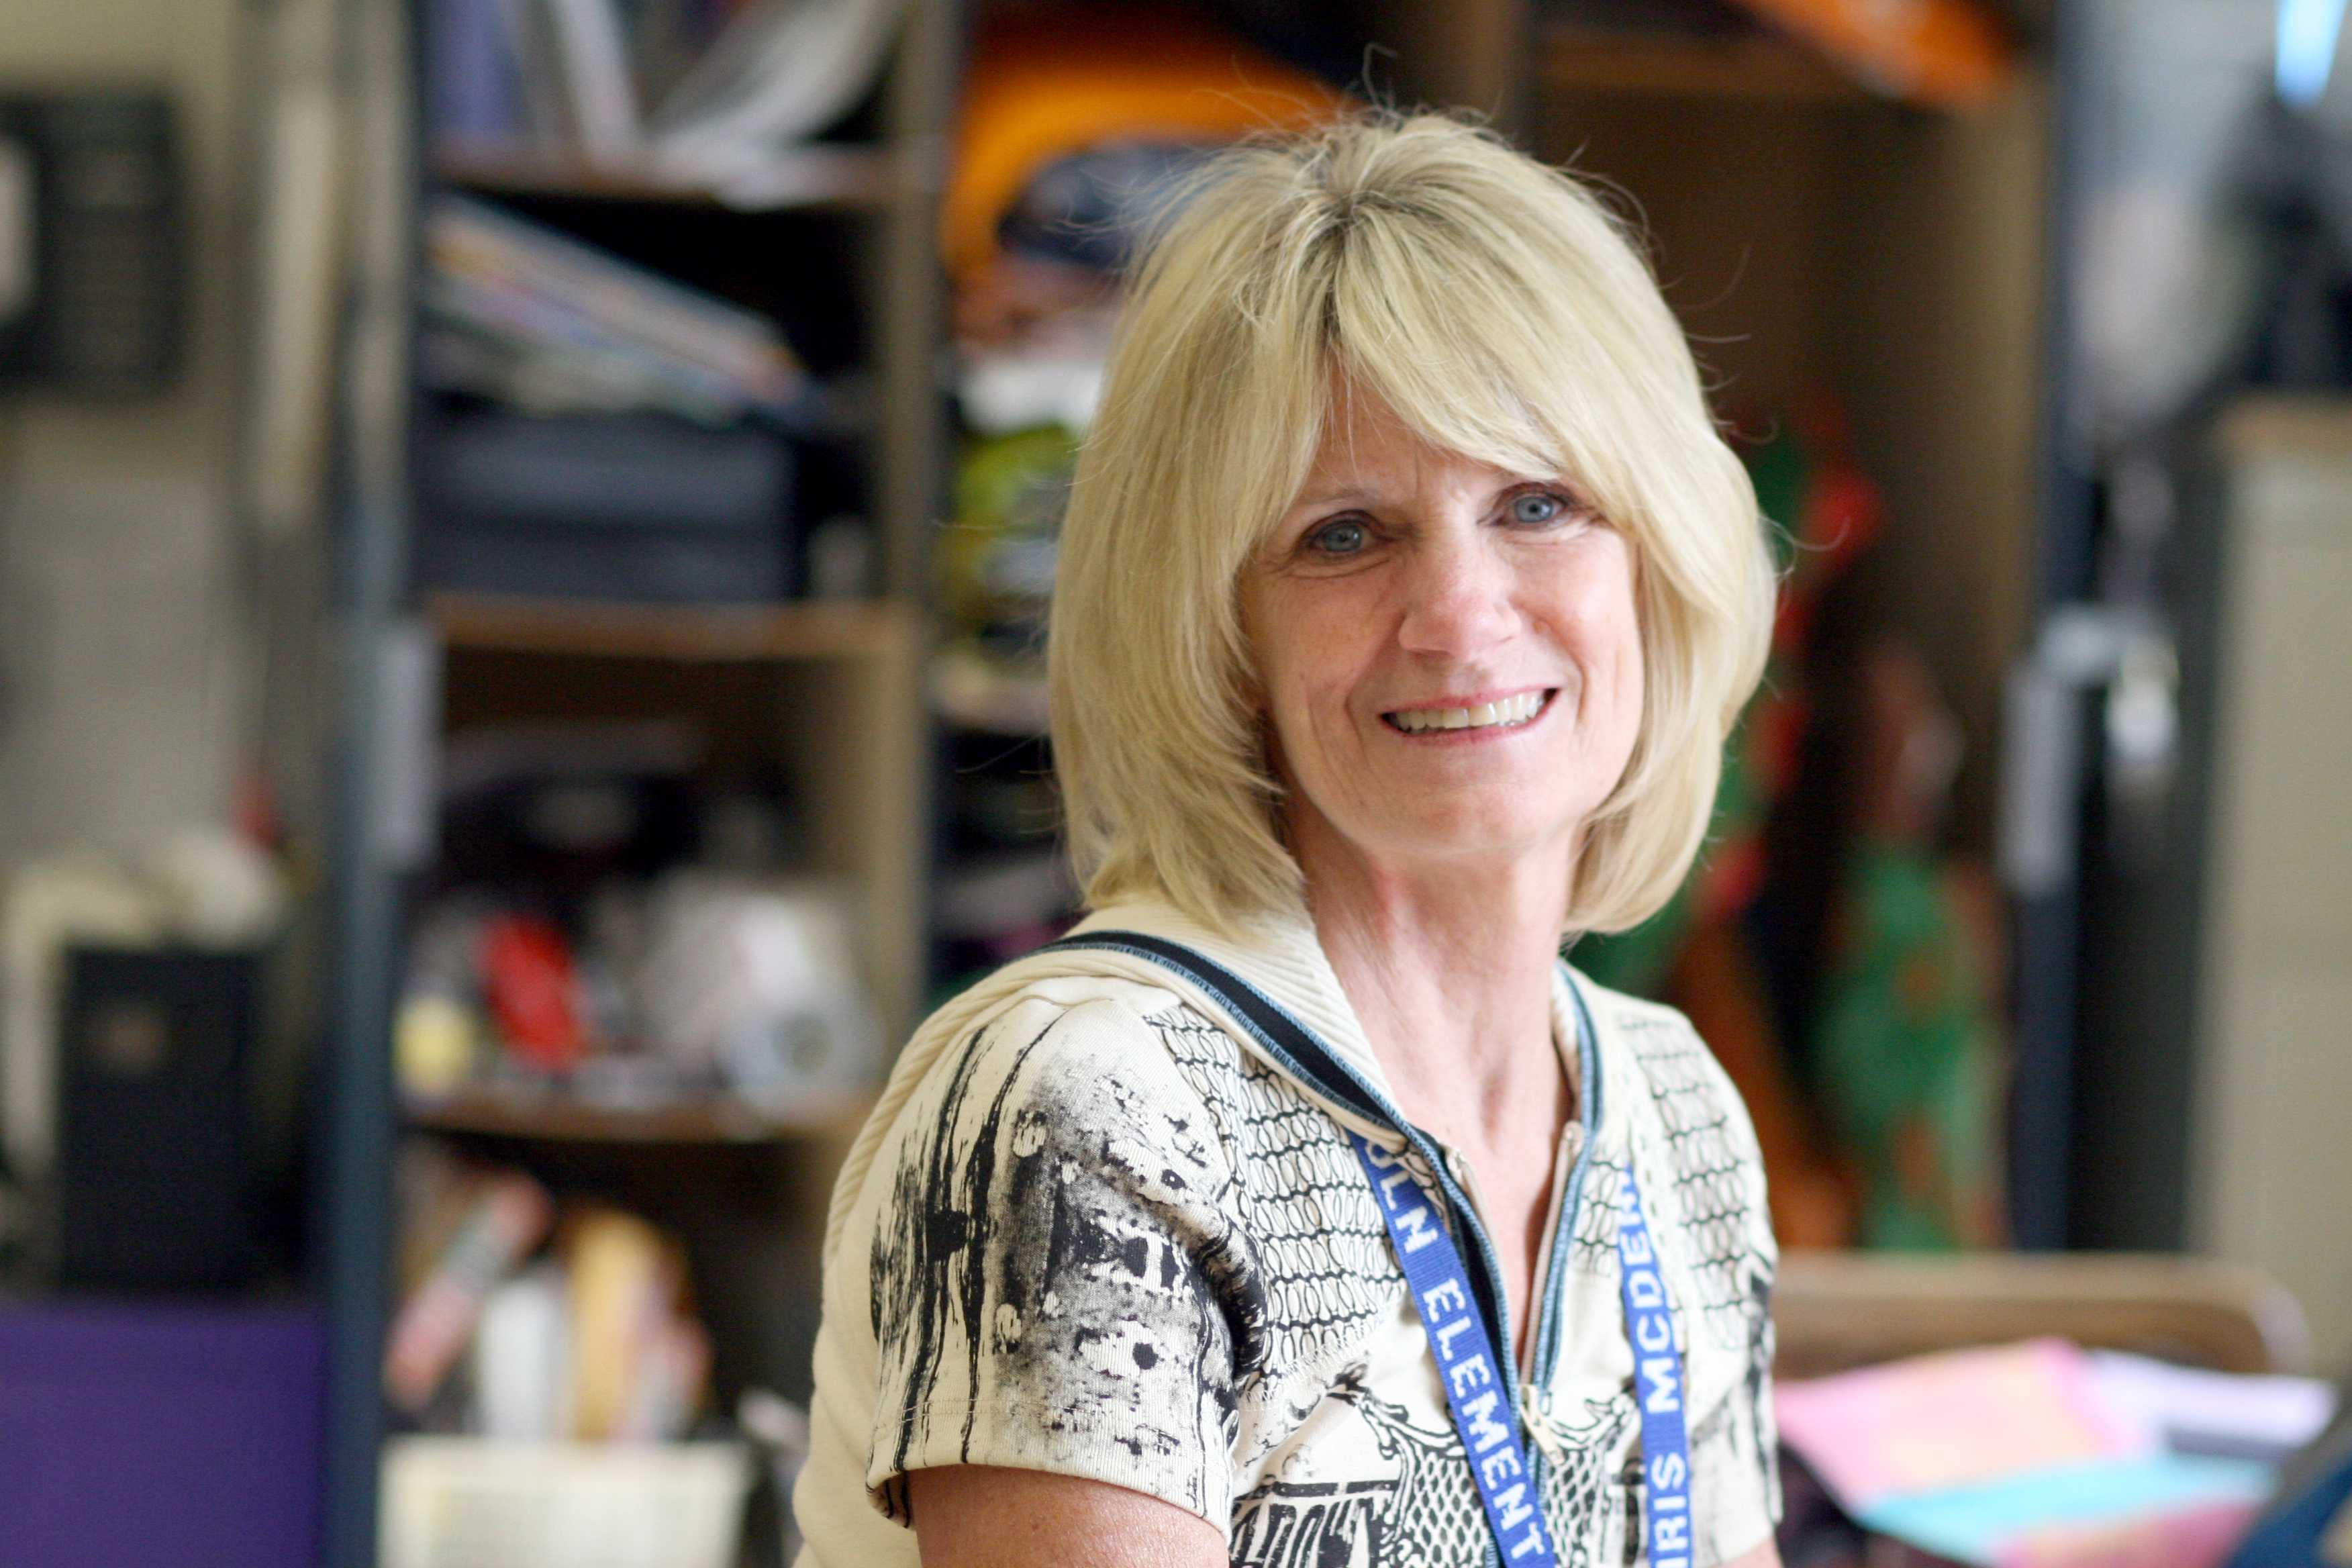 Former Lincoln Elementary School Principal Chris McDermott suddenly announced plans to retire in October, just weeks into her 11th year as principal. Days after the announcement, Evanston-Skokie District 65 appointed an interim principal who will serve until the position is permanently filled.